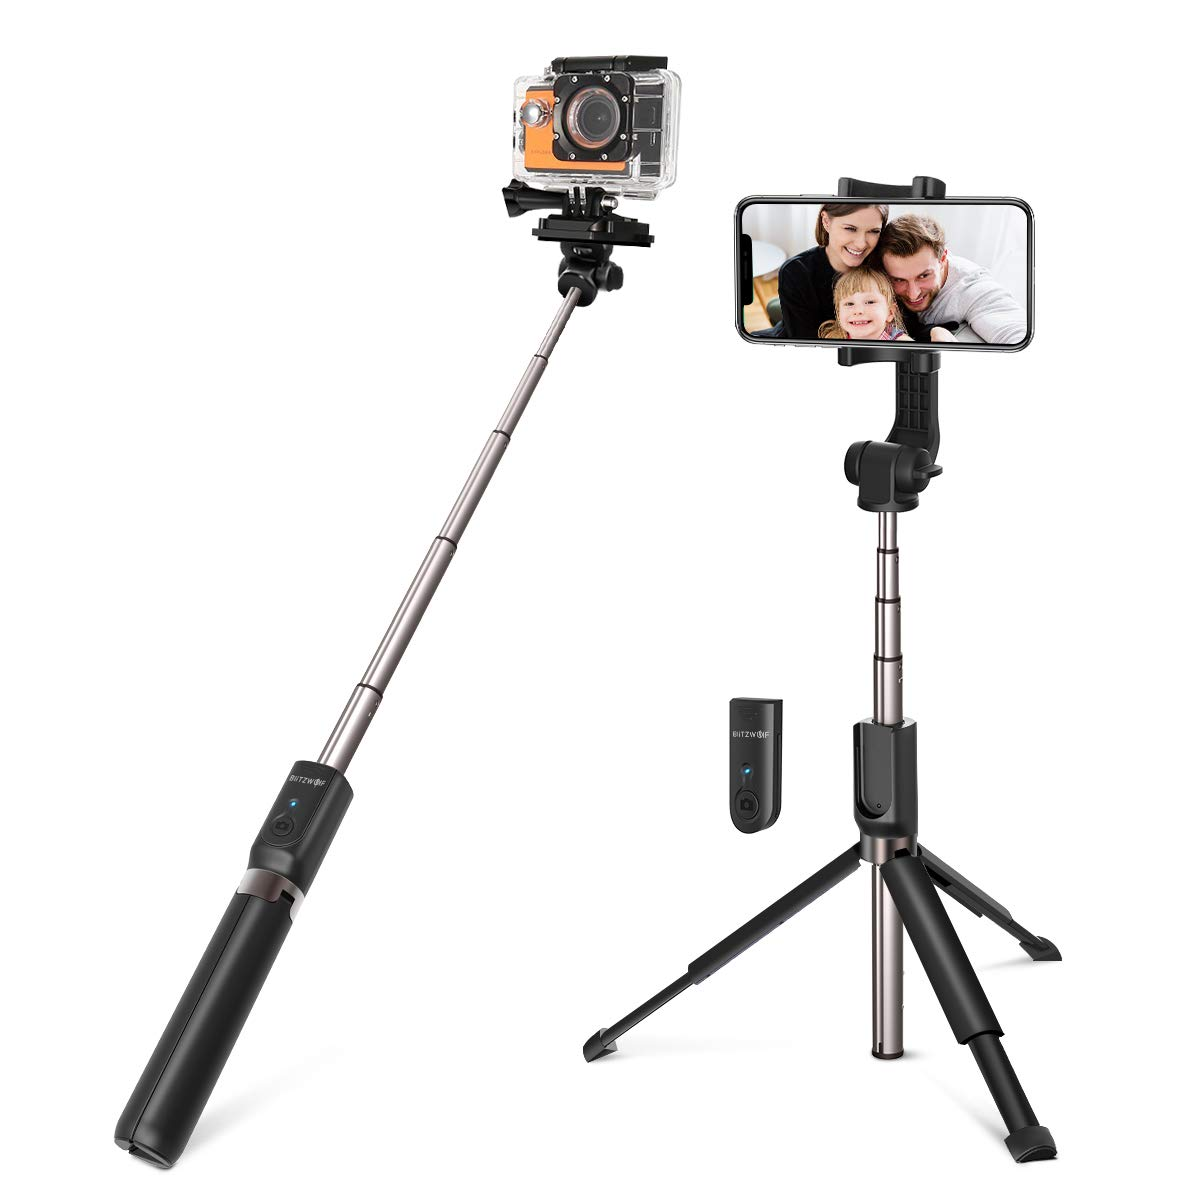 Selfie Stick Tripod, BlitzWolf 35 inch Extendable Bluetooth Selfie Stick with Wireless Remote for Gopro iPhone Xs Max/XR/X/8/8 Plus/7/7 Plus /6 Plus/6S/6, Galaxy S10/S9/S8/Note8, Huawei, More by BlitzWolf